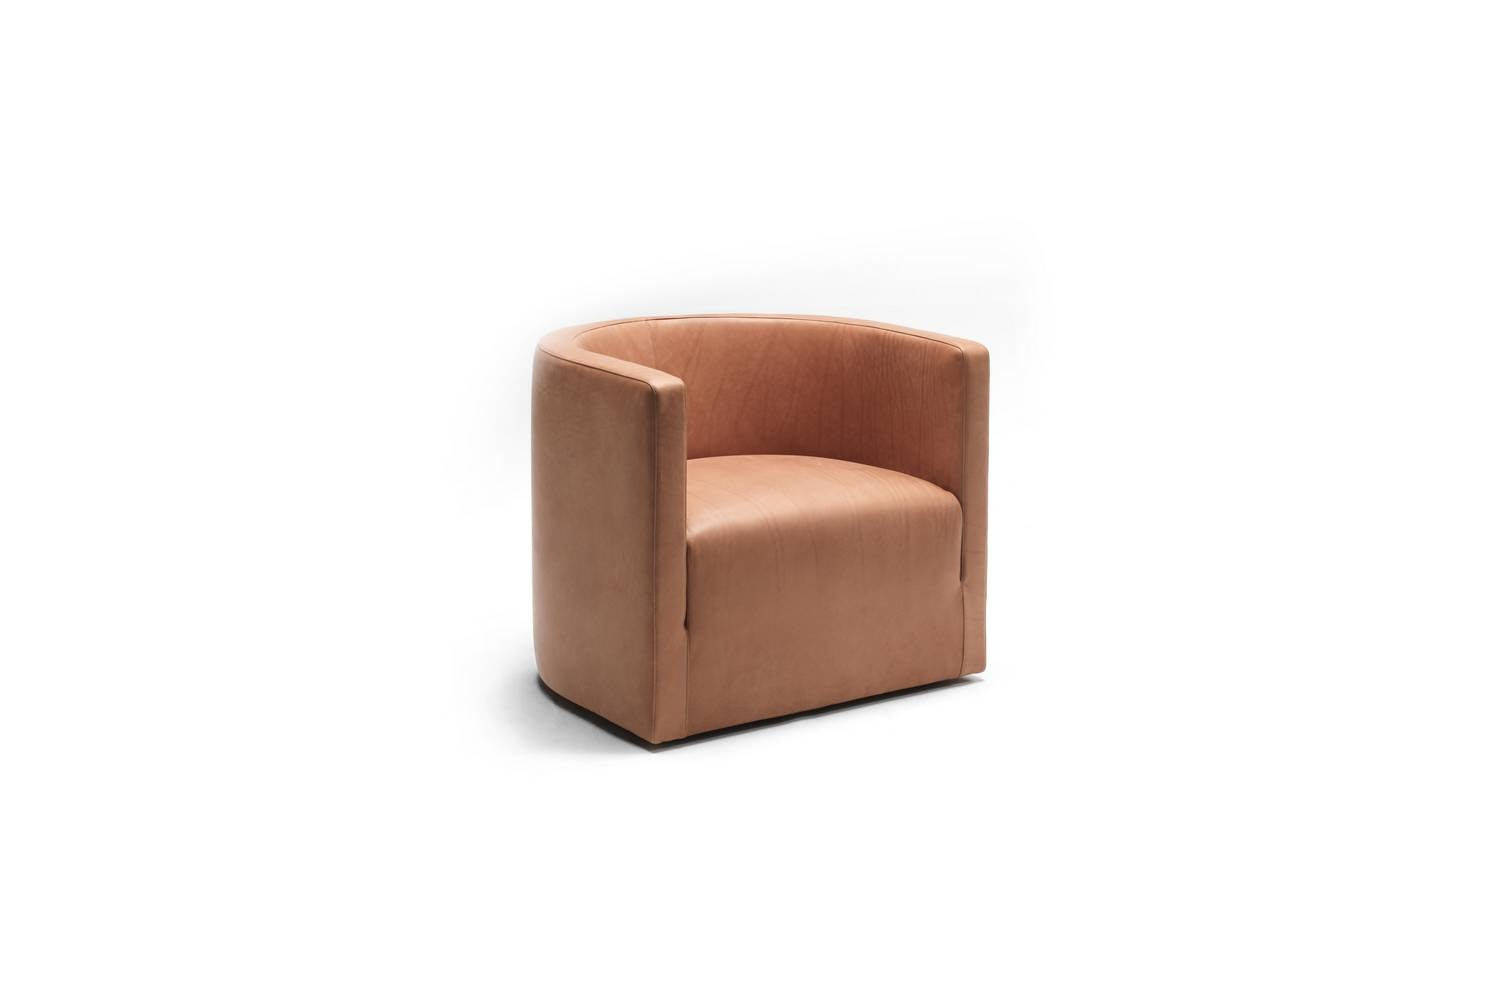 Confident Armchair by Piero Lissoni for Living Divani